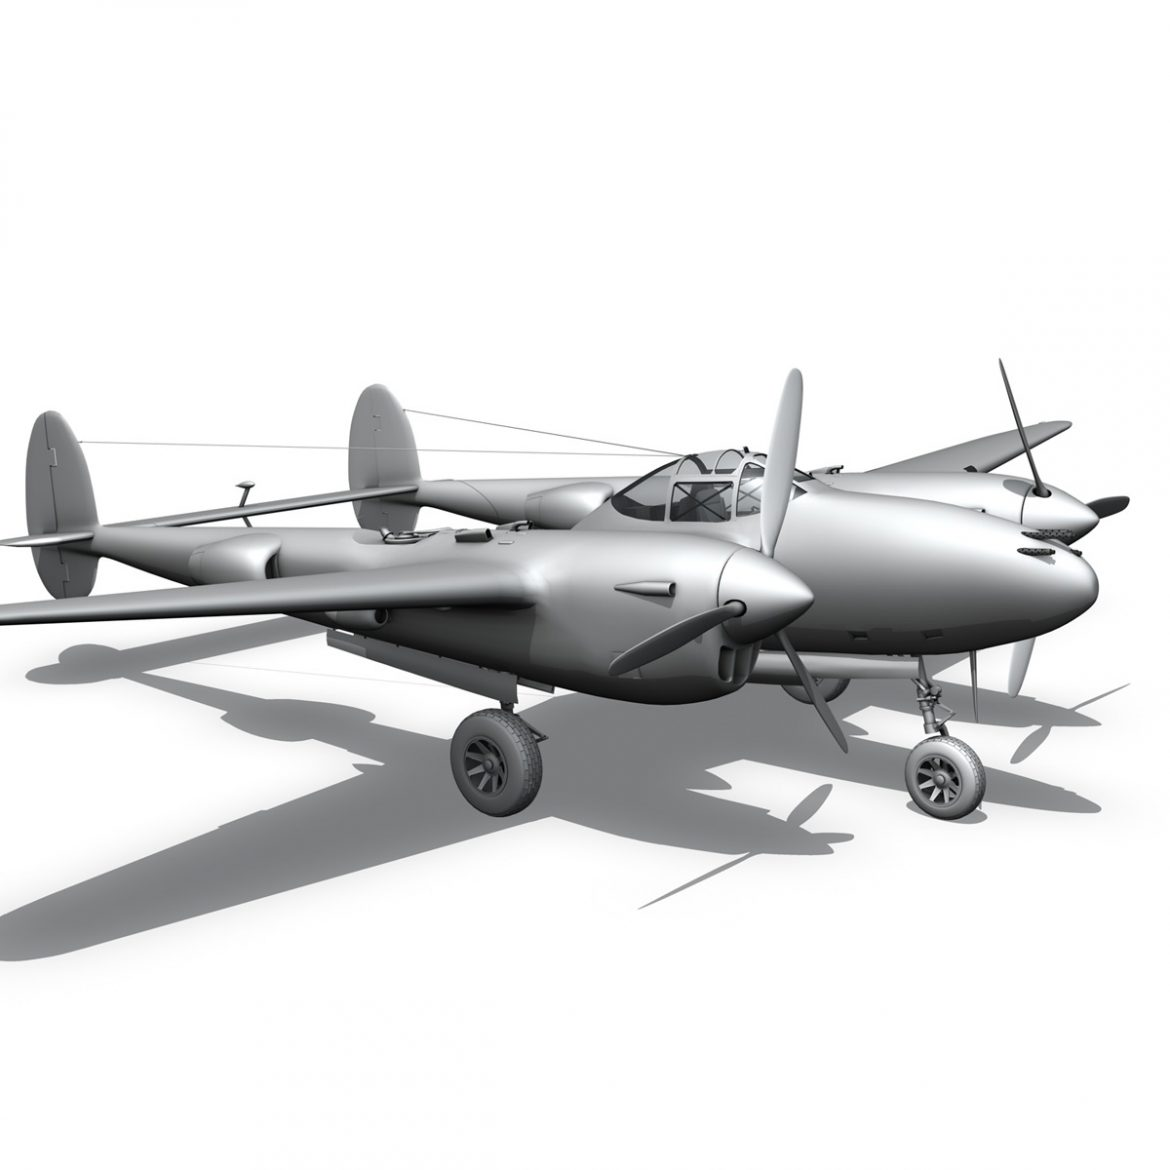 lockheed p-38 lightning – gentle annie 3d model fbx c4d lwo obj 300096